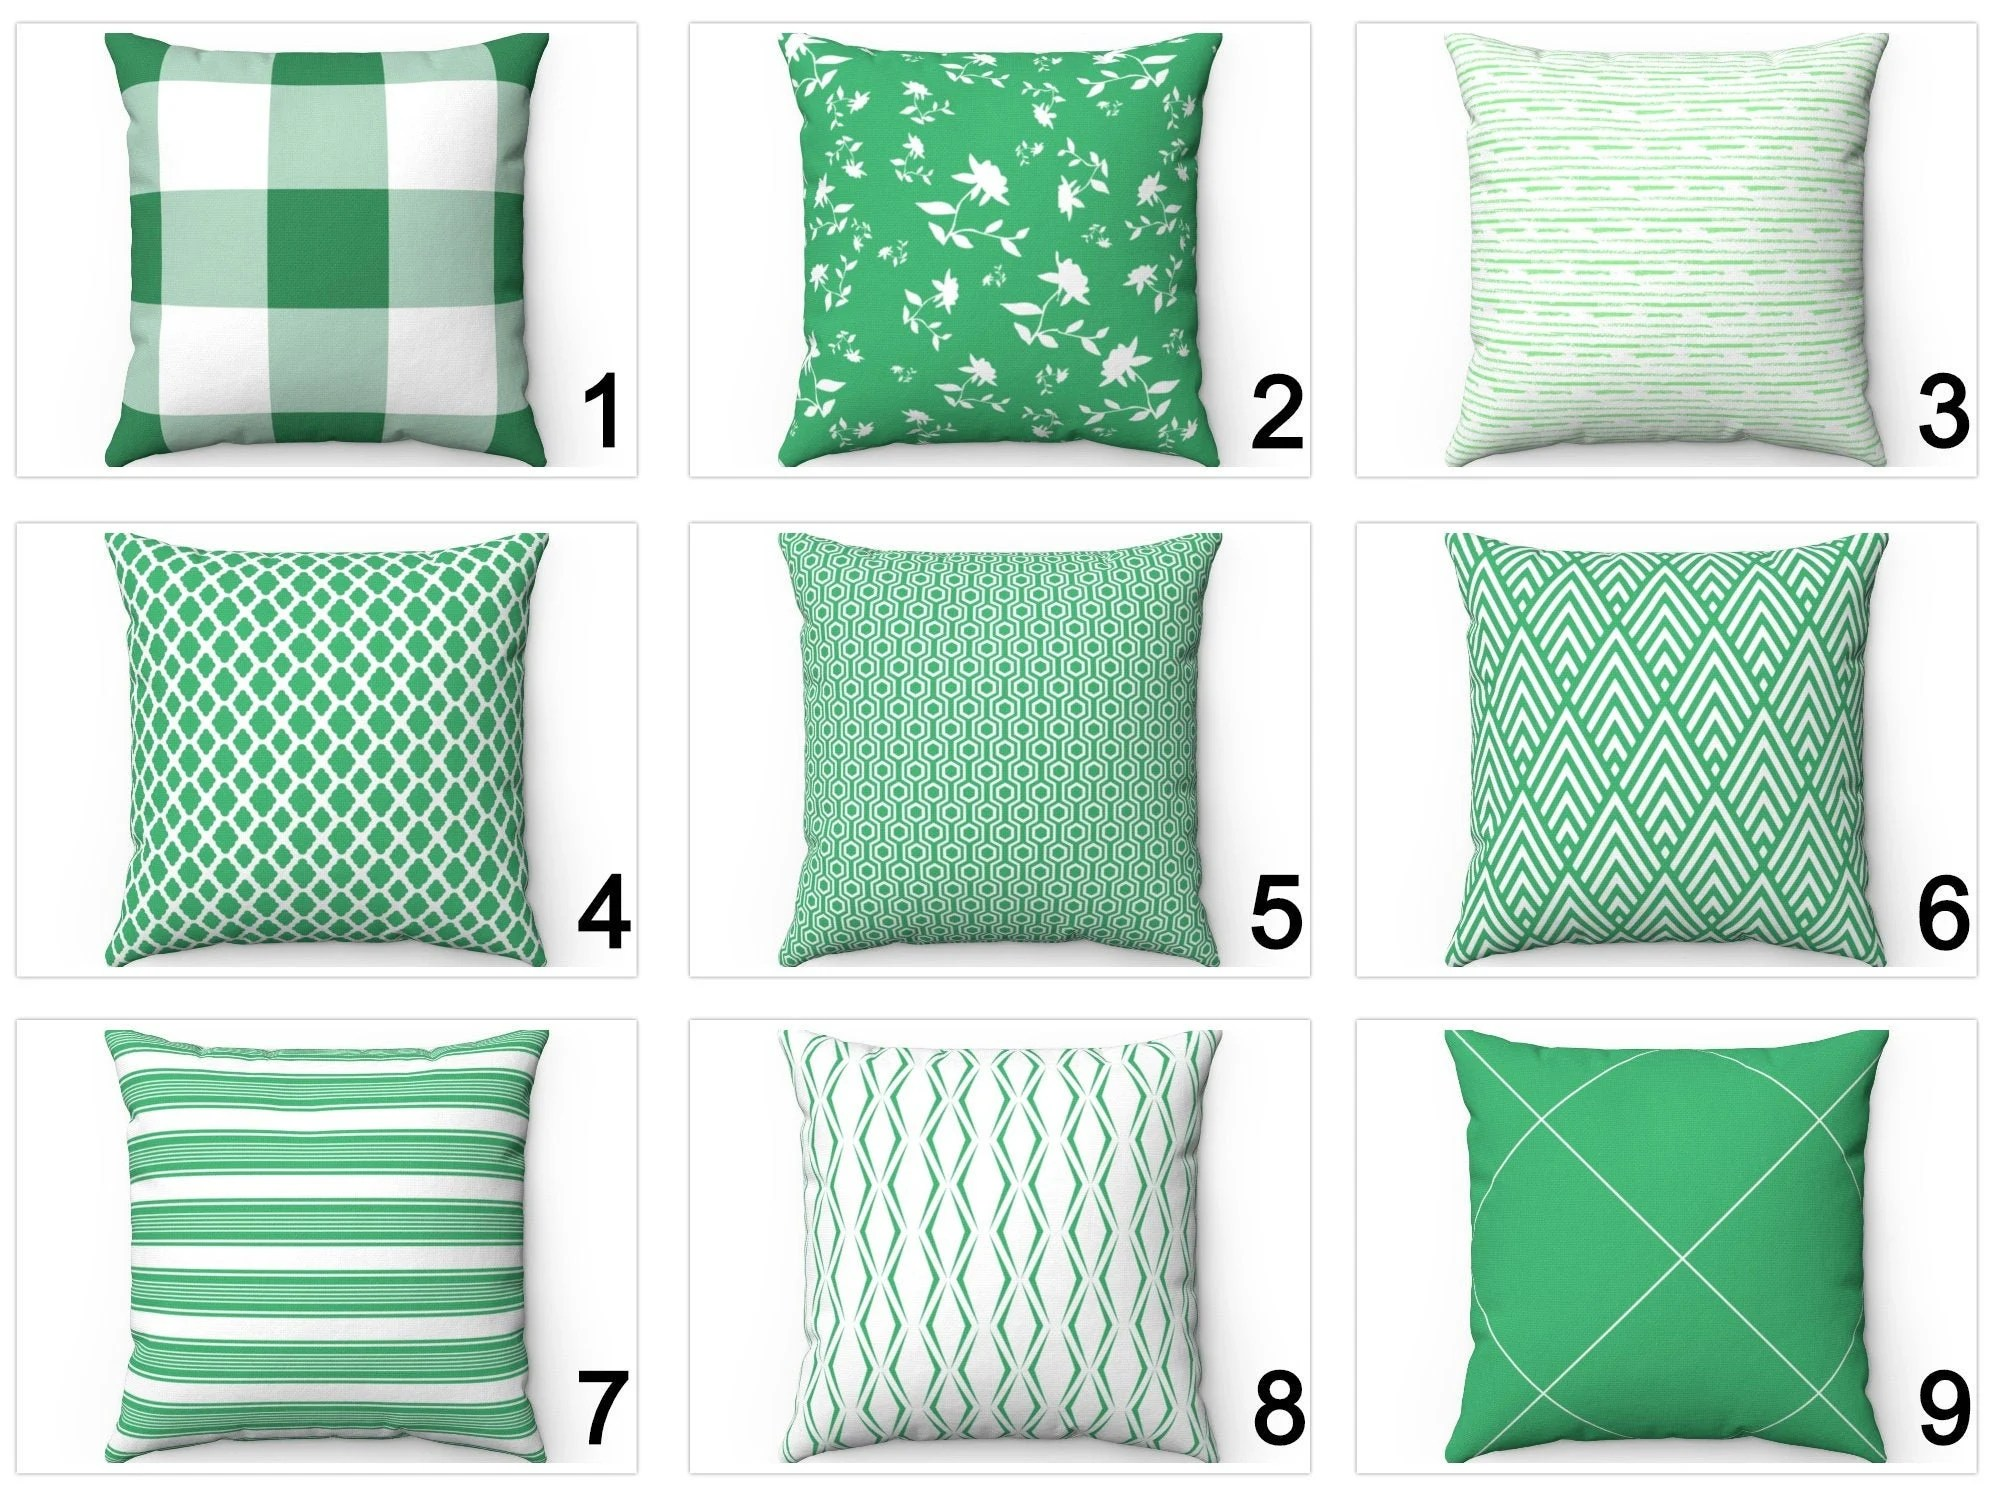 22x22 outdoor pillow etsy